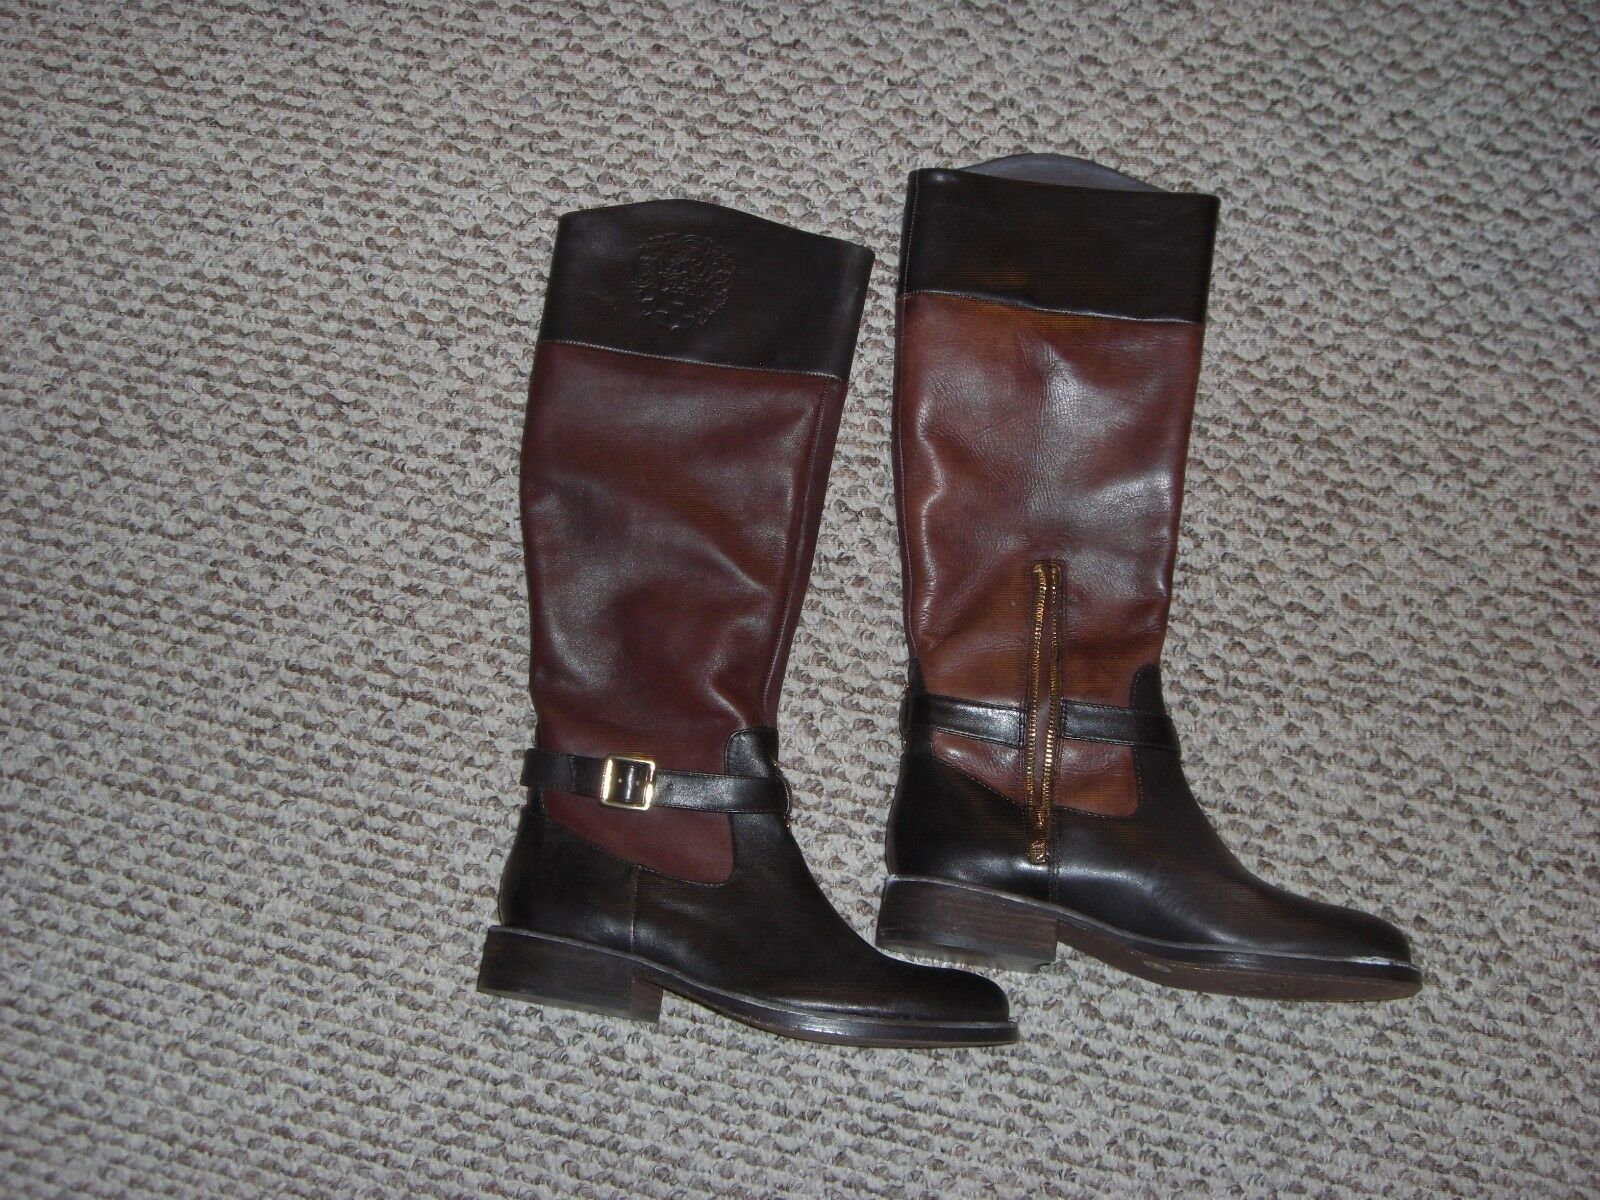 Vince Camuto Flavian Knee High Women's Boots, Size 8,5